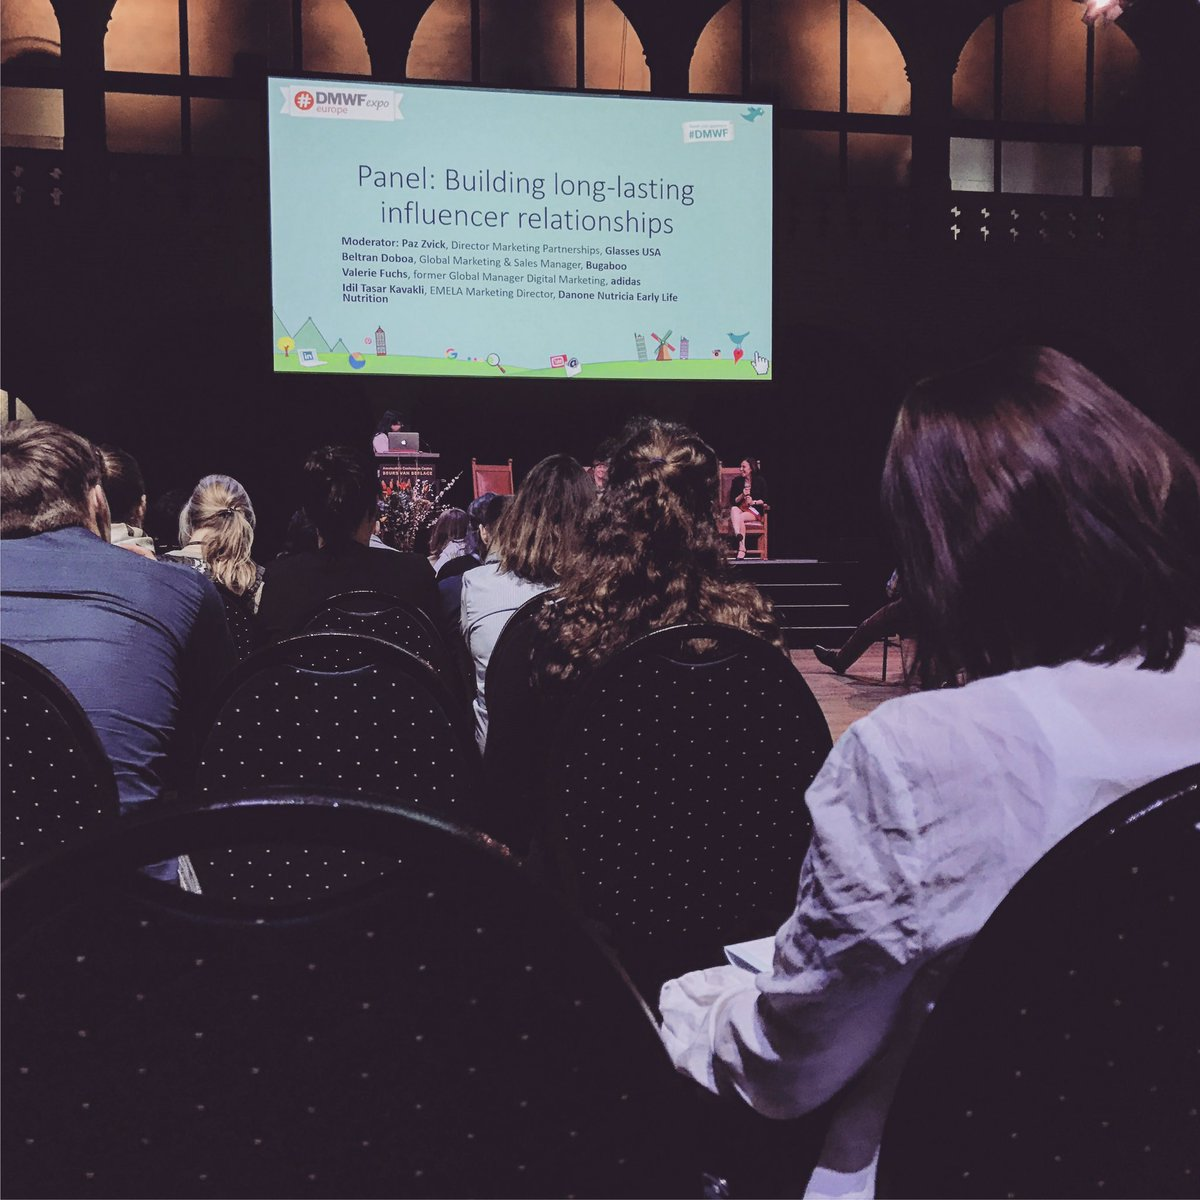 DMWF Conference & Expo Europe 2019 (Amsterdam)